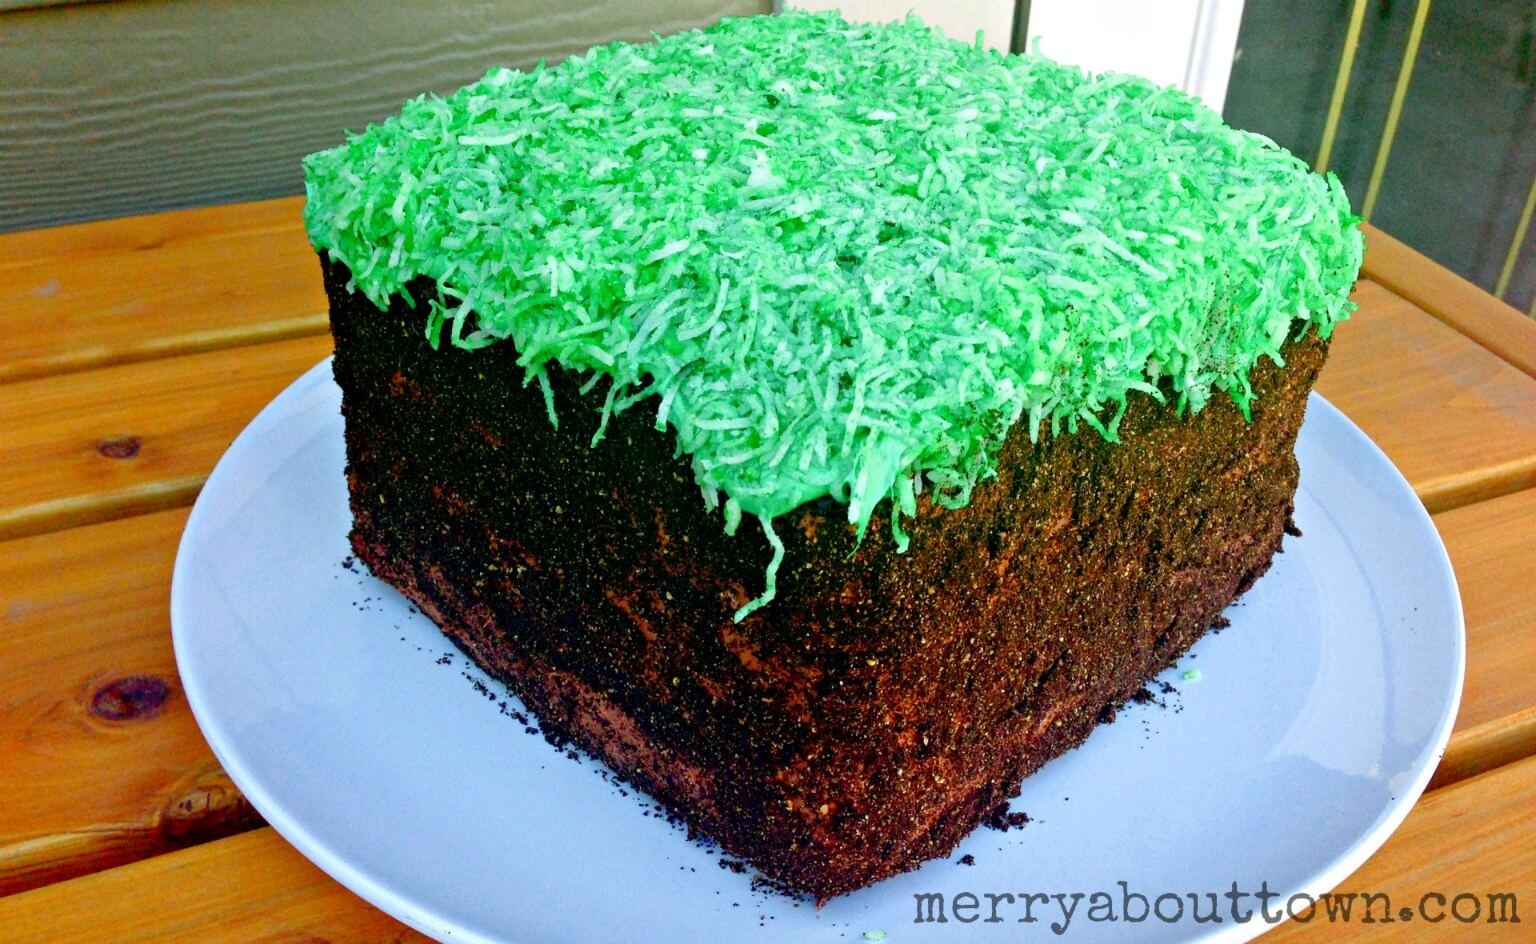 Minecraft Block Cake Images : Minecraft Grass Block Cake Tutorial - Merry About Town